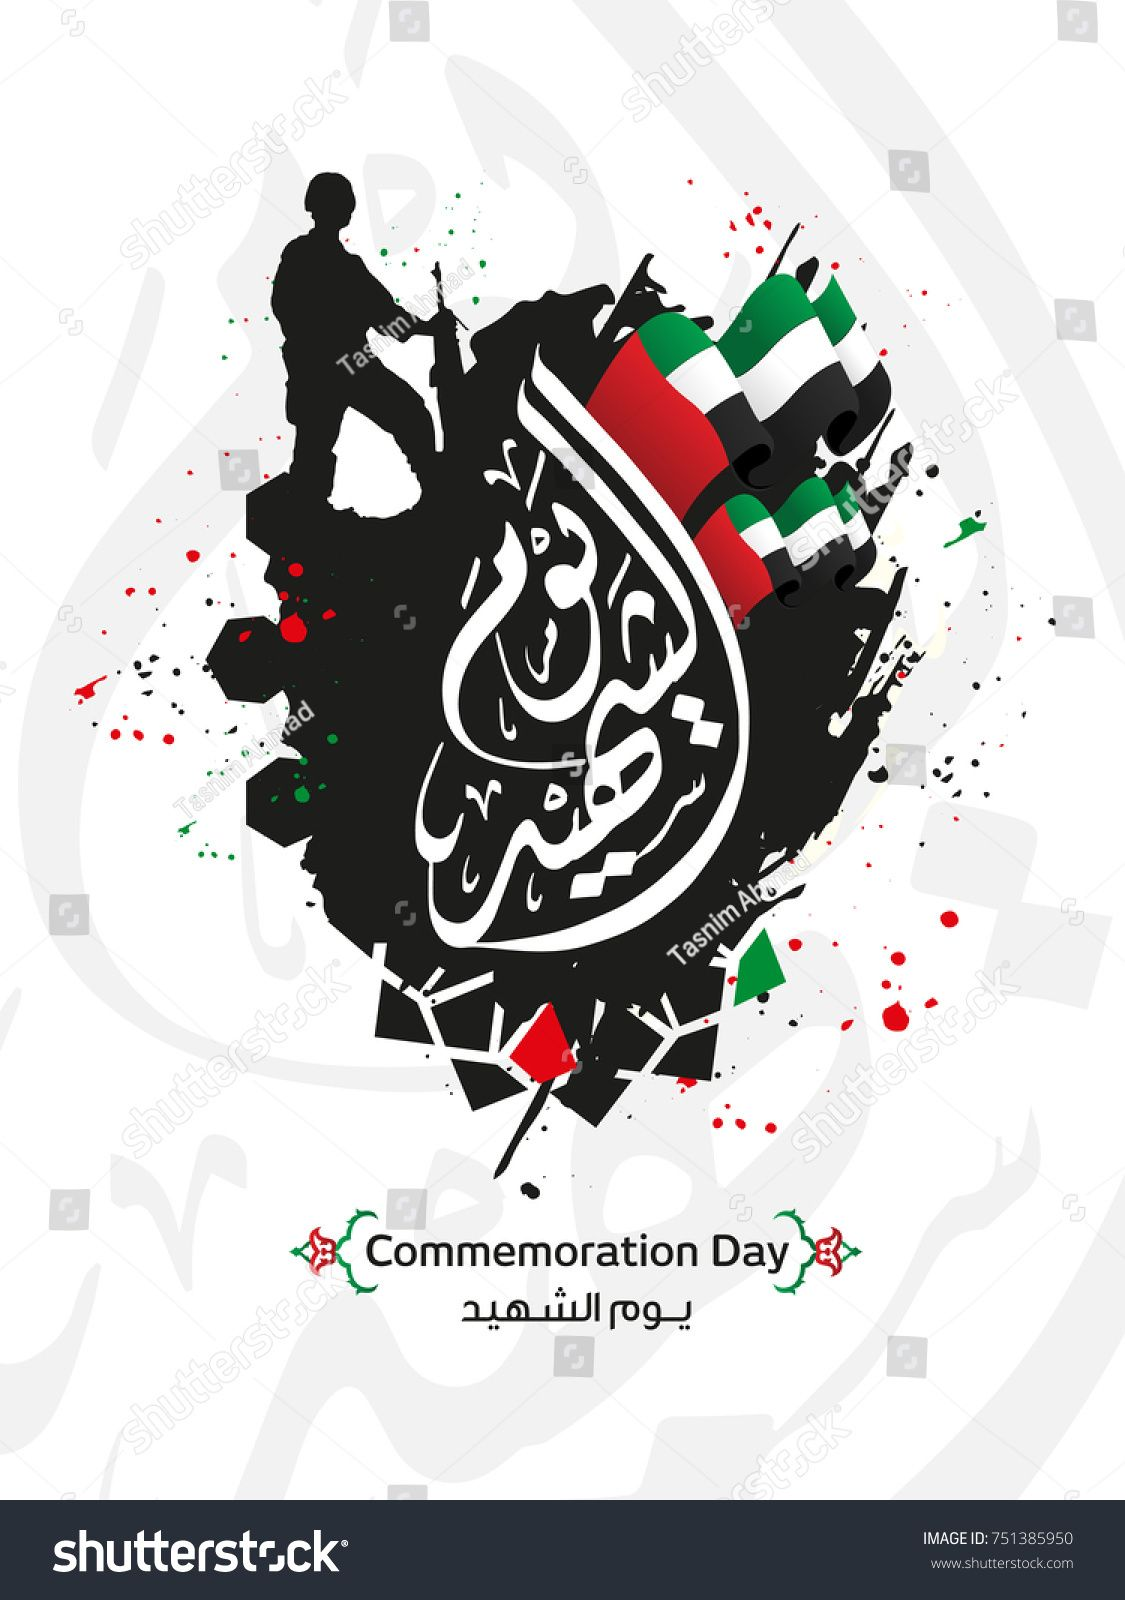 Vector Of Commemoration Day Or Martyrs Day In Arabic Calligraphy With Uae Flag Day Martyrs Vector Commemorat Martyrs Day Brochure Design Template Flag Vector